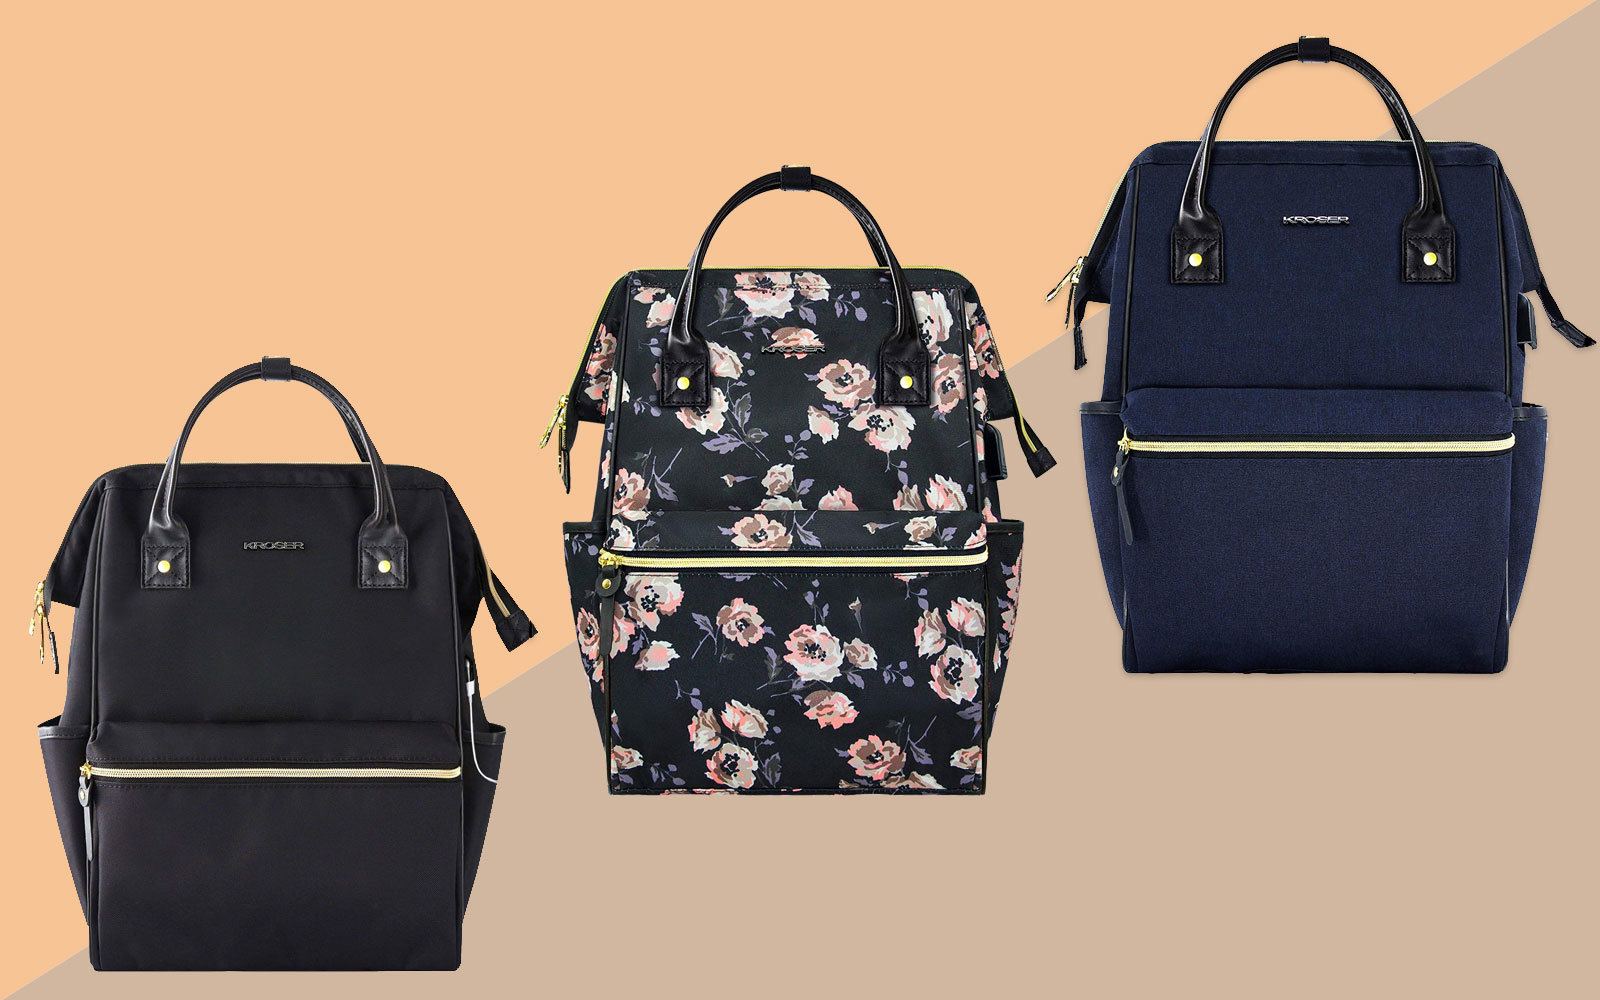 Three Backpacks, Black, Floral, and Navy